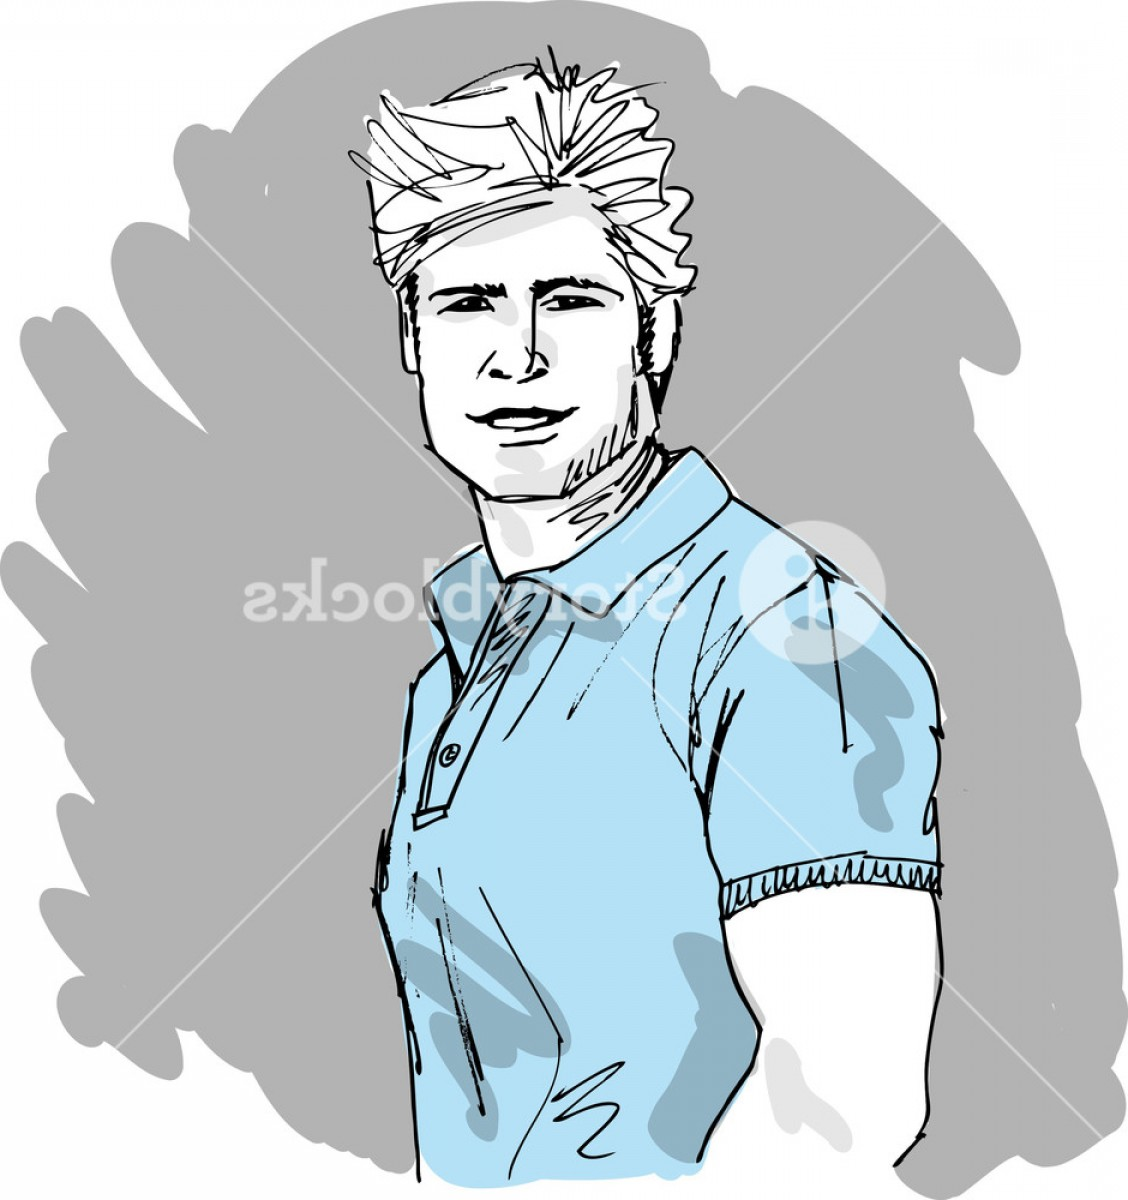 Handsome Man Vector Outline: Sketch Of Handsome Man Face Vector Illustration Bvrxdjhmwjgolwx